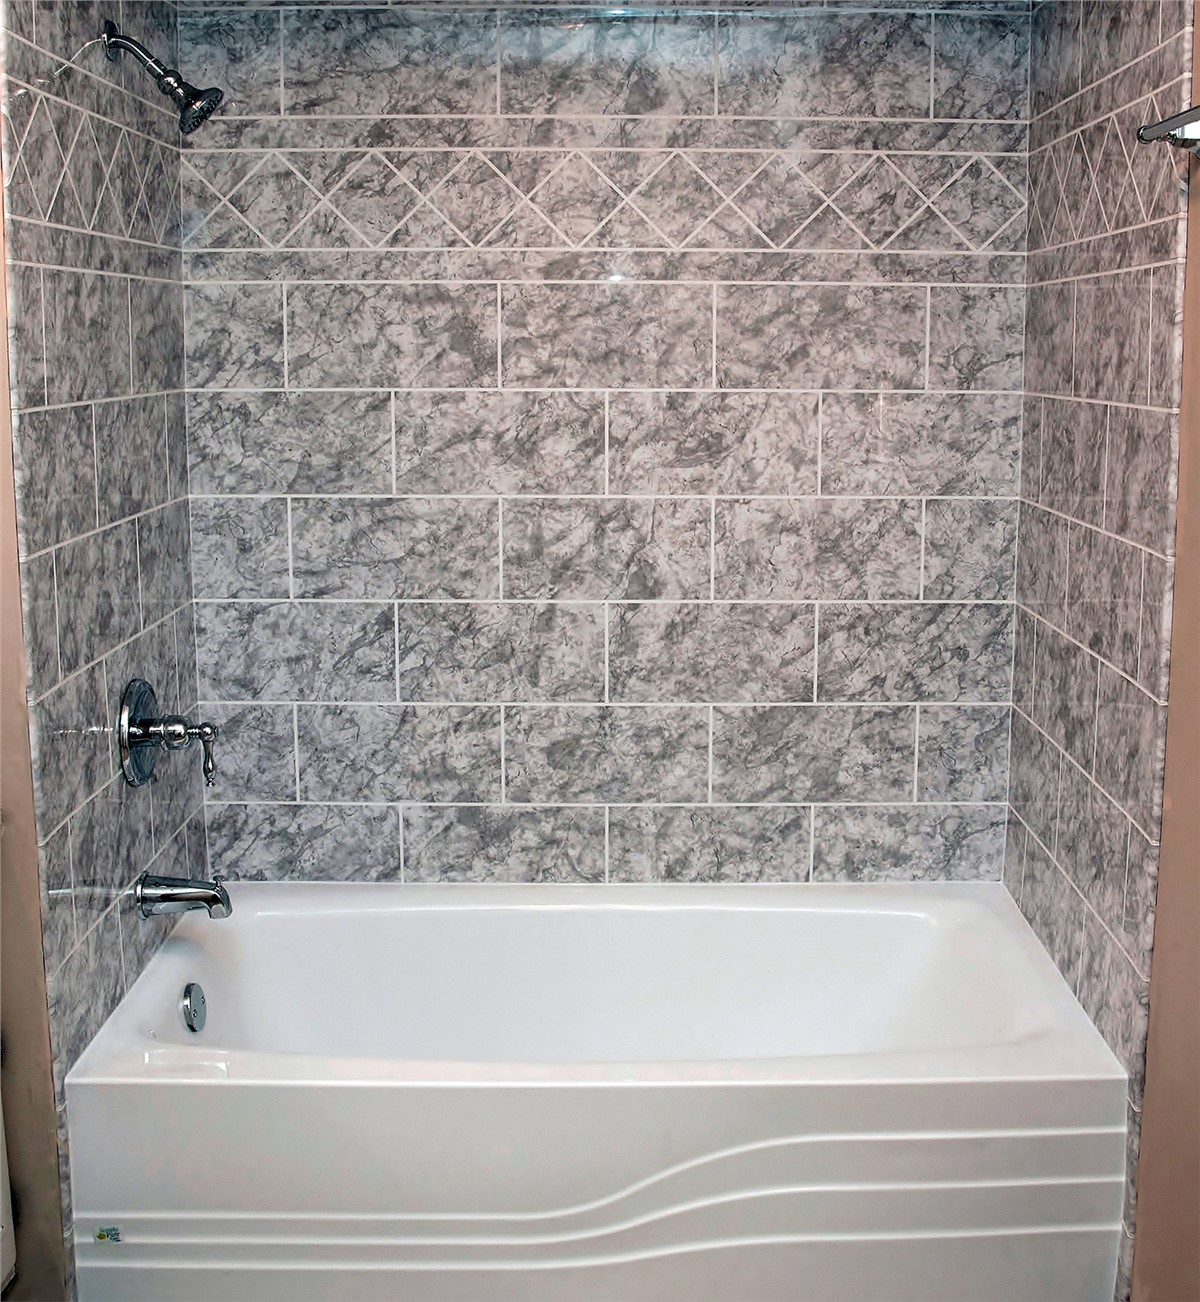 Massachusetts Replacement Tubs Hampden County Replacement Tub Installers Vista Home Improvement